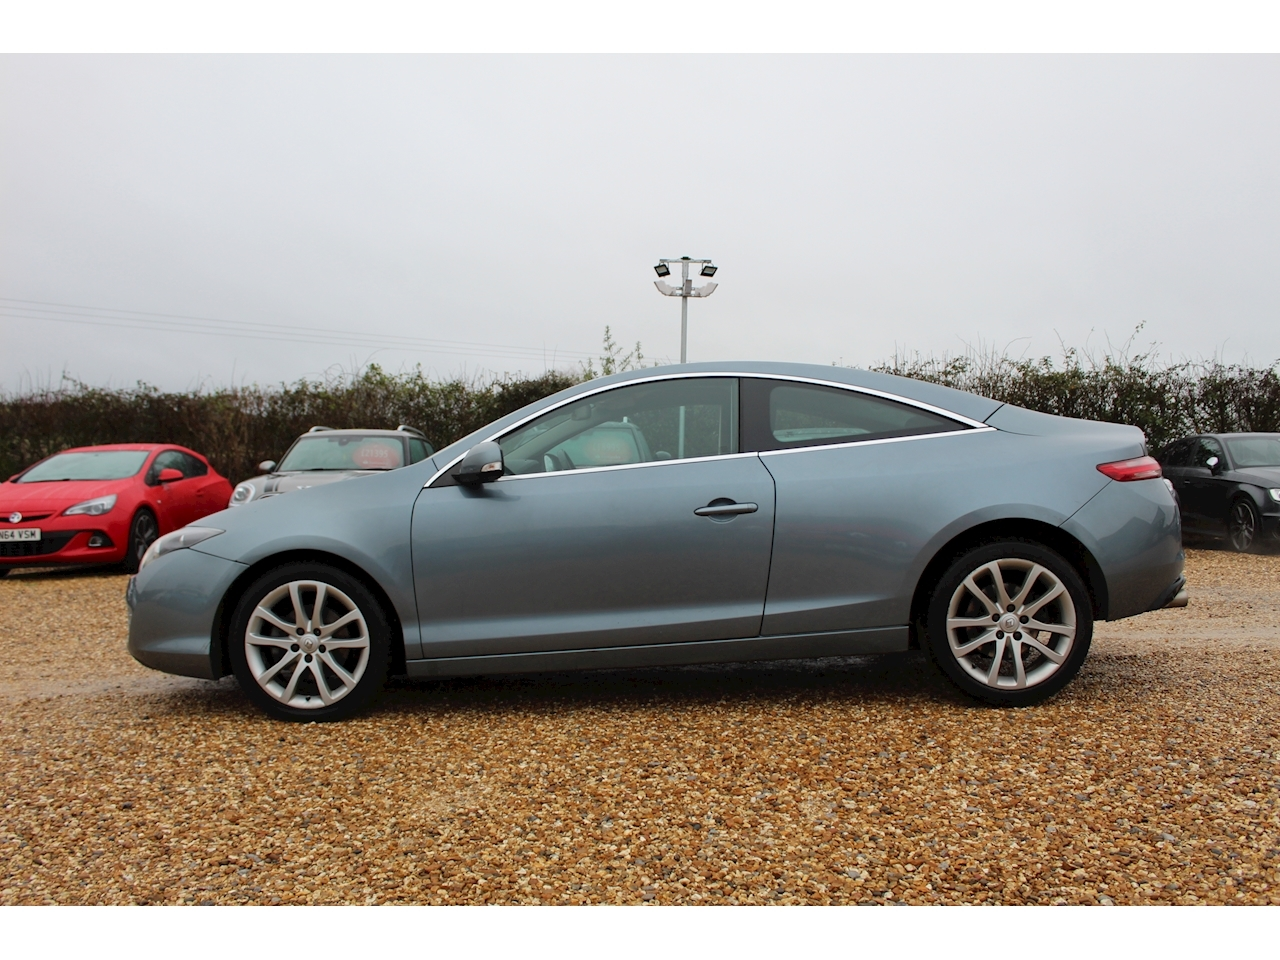 Renault 2.0 dCi FAP Dynamique Coupe 2dr Diesel Manual (Tom Tom) (136 g/km, 150 bhp)